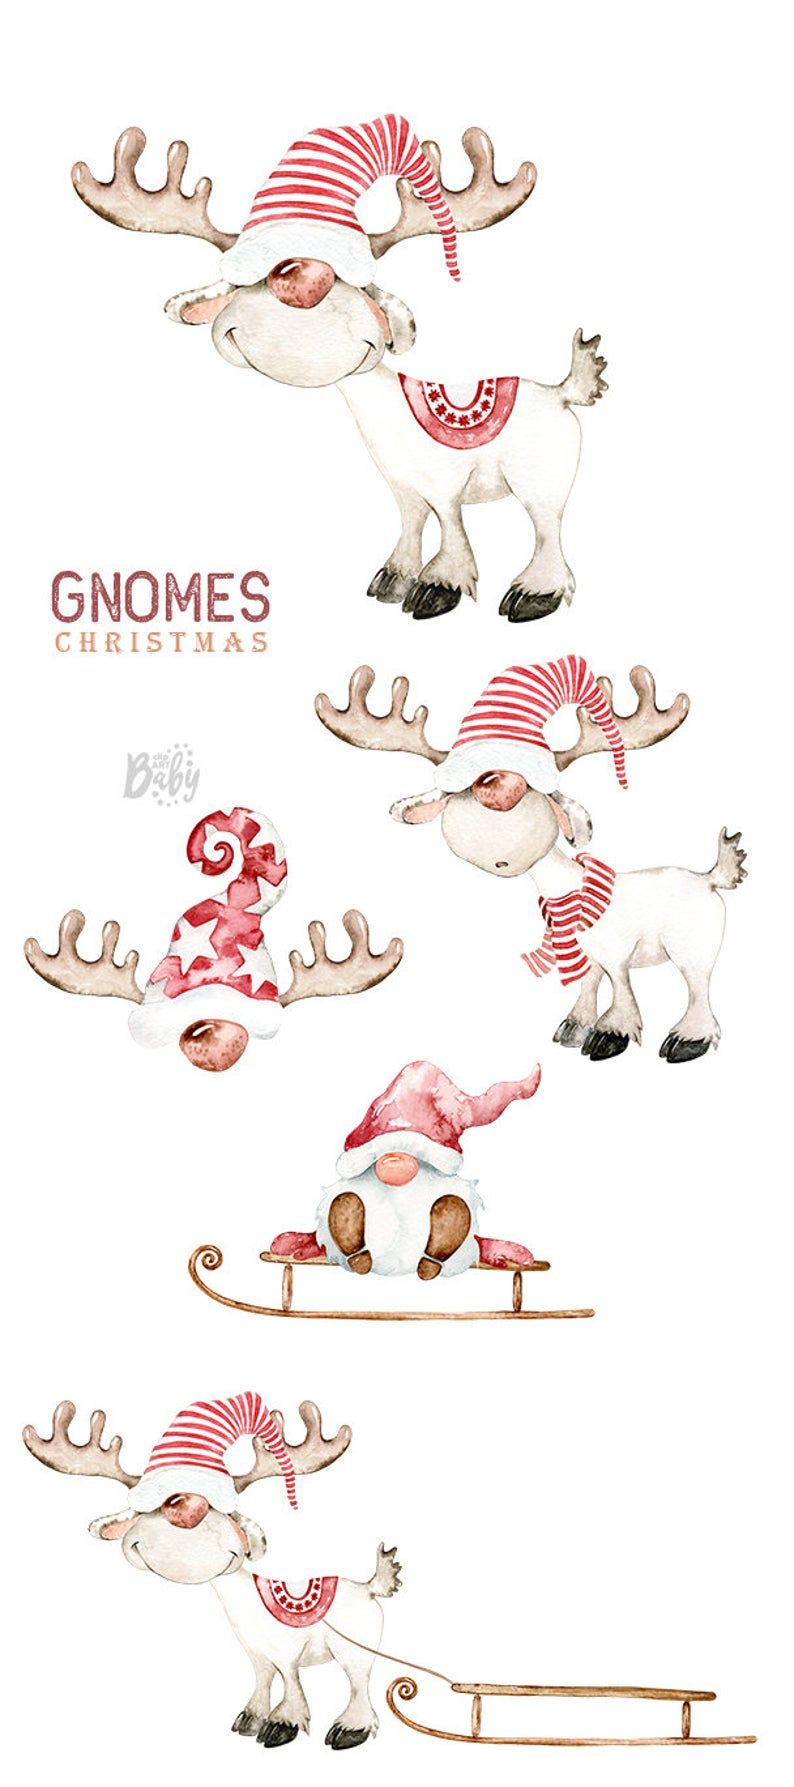 Christmas Deer Nordic Gnomes Art Gnome Clipart Scandinavian Etsy In 2020 Christmas Drawing Christmas Gnome Christmas Art